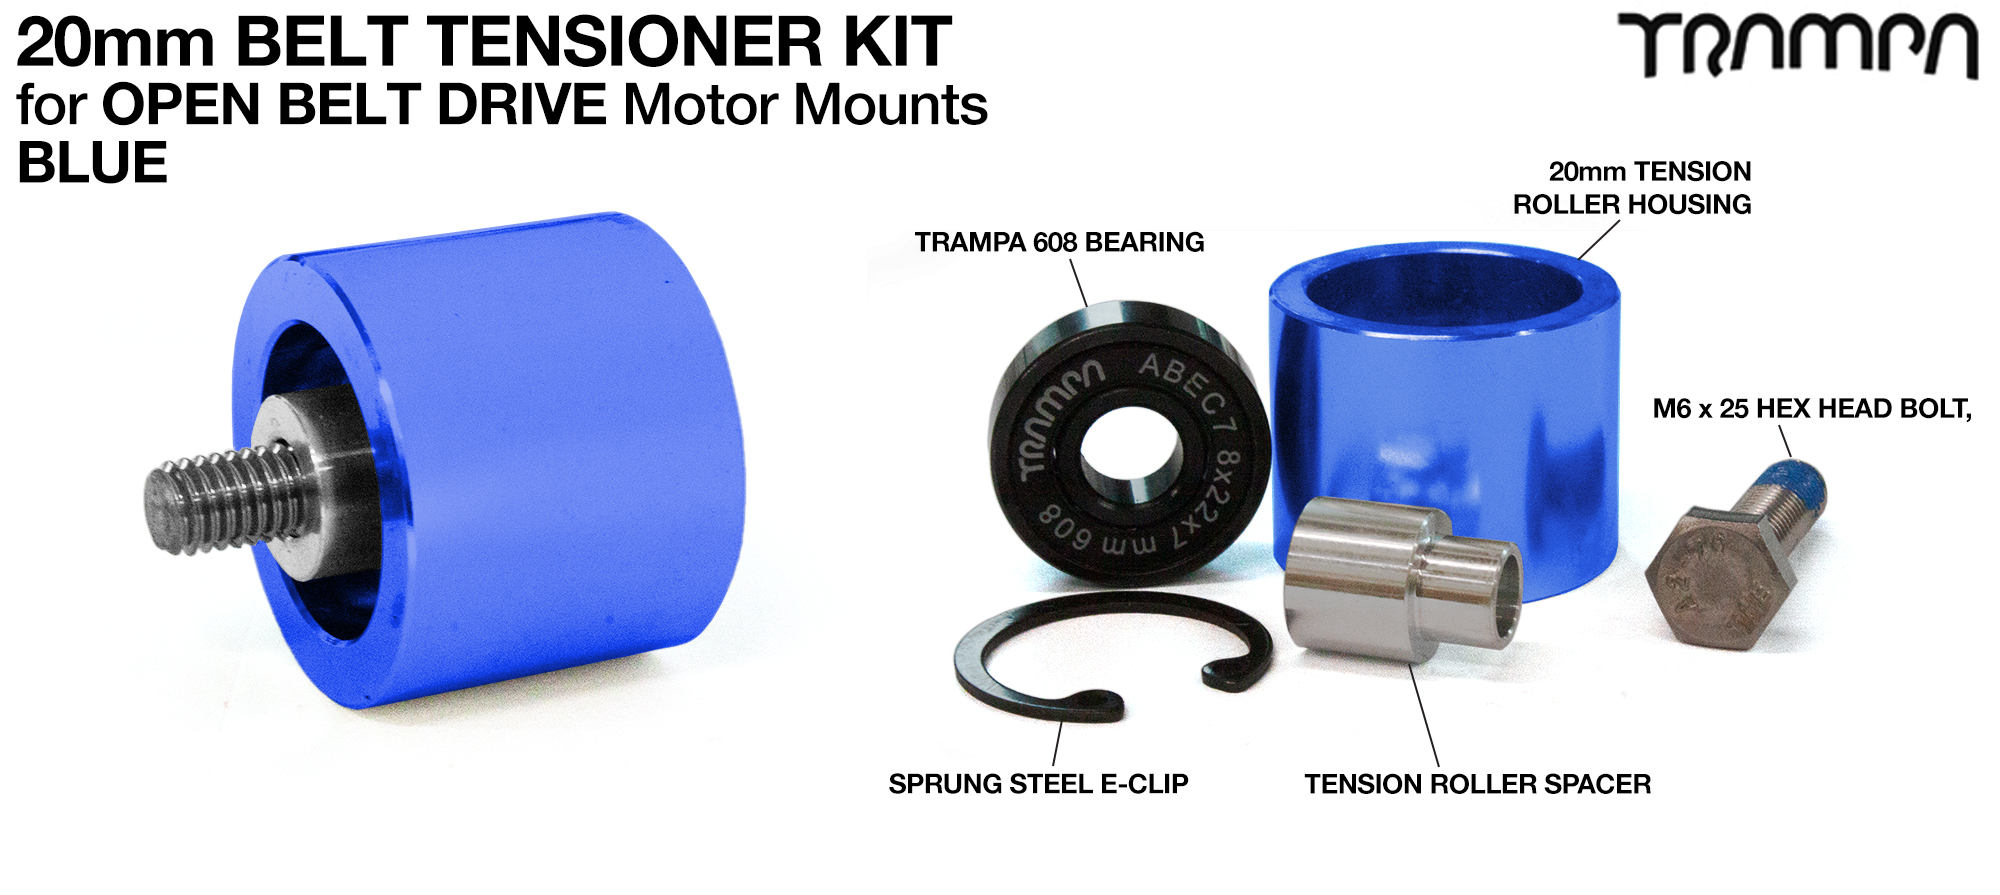 BLUE OBD 20mm Belt Tensioner